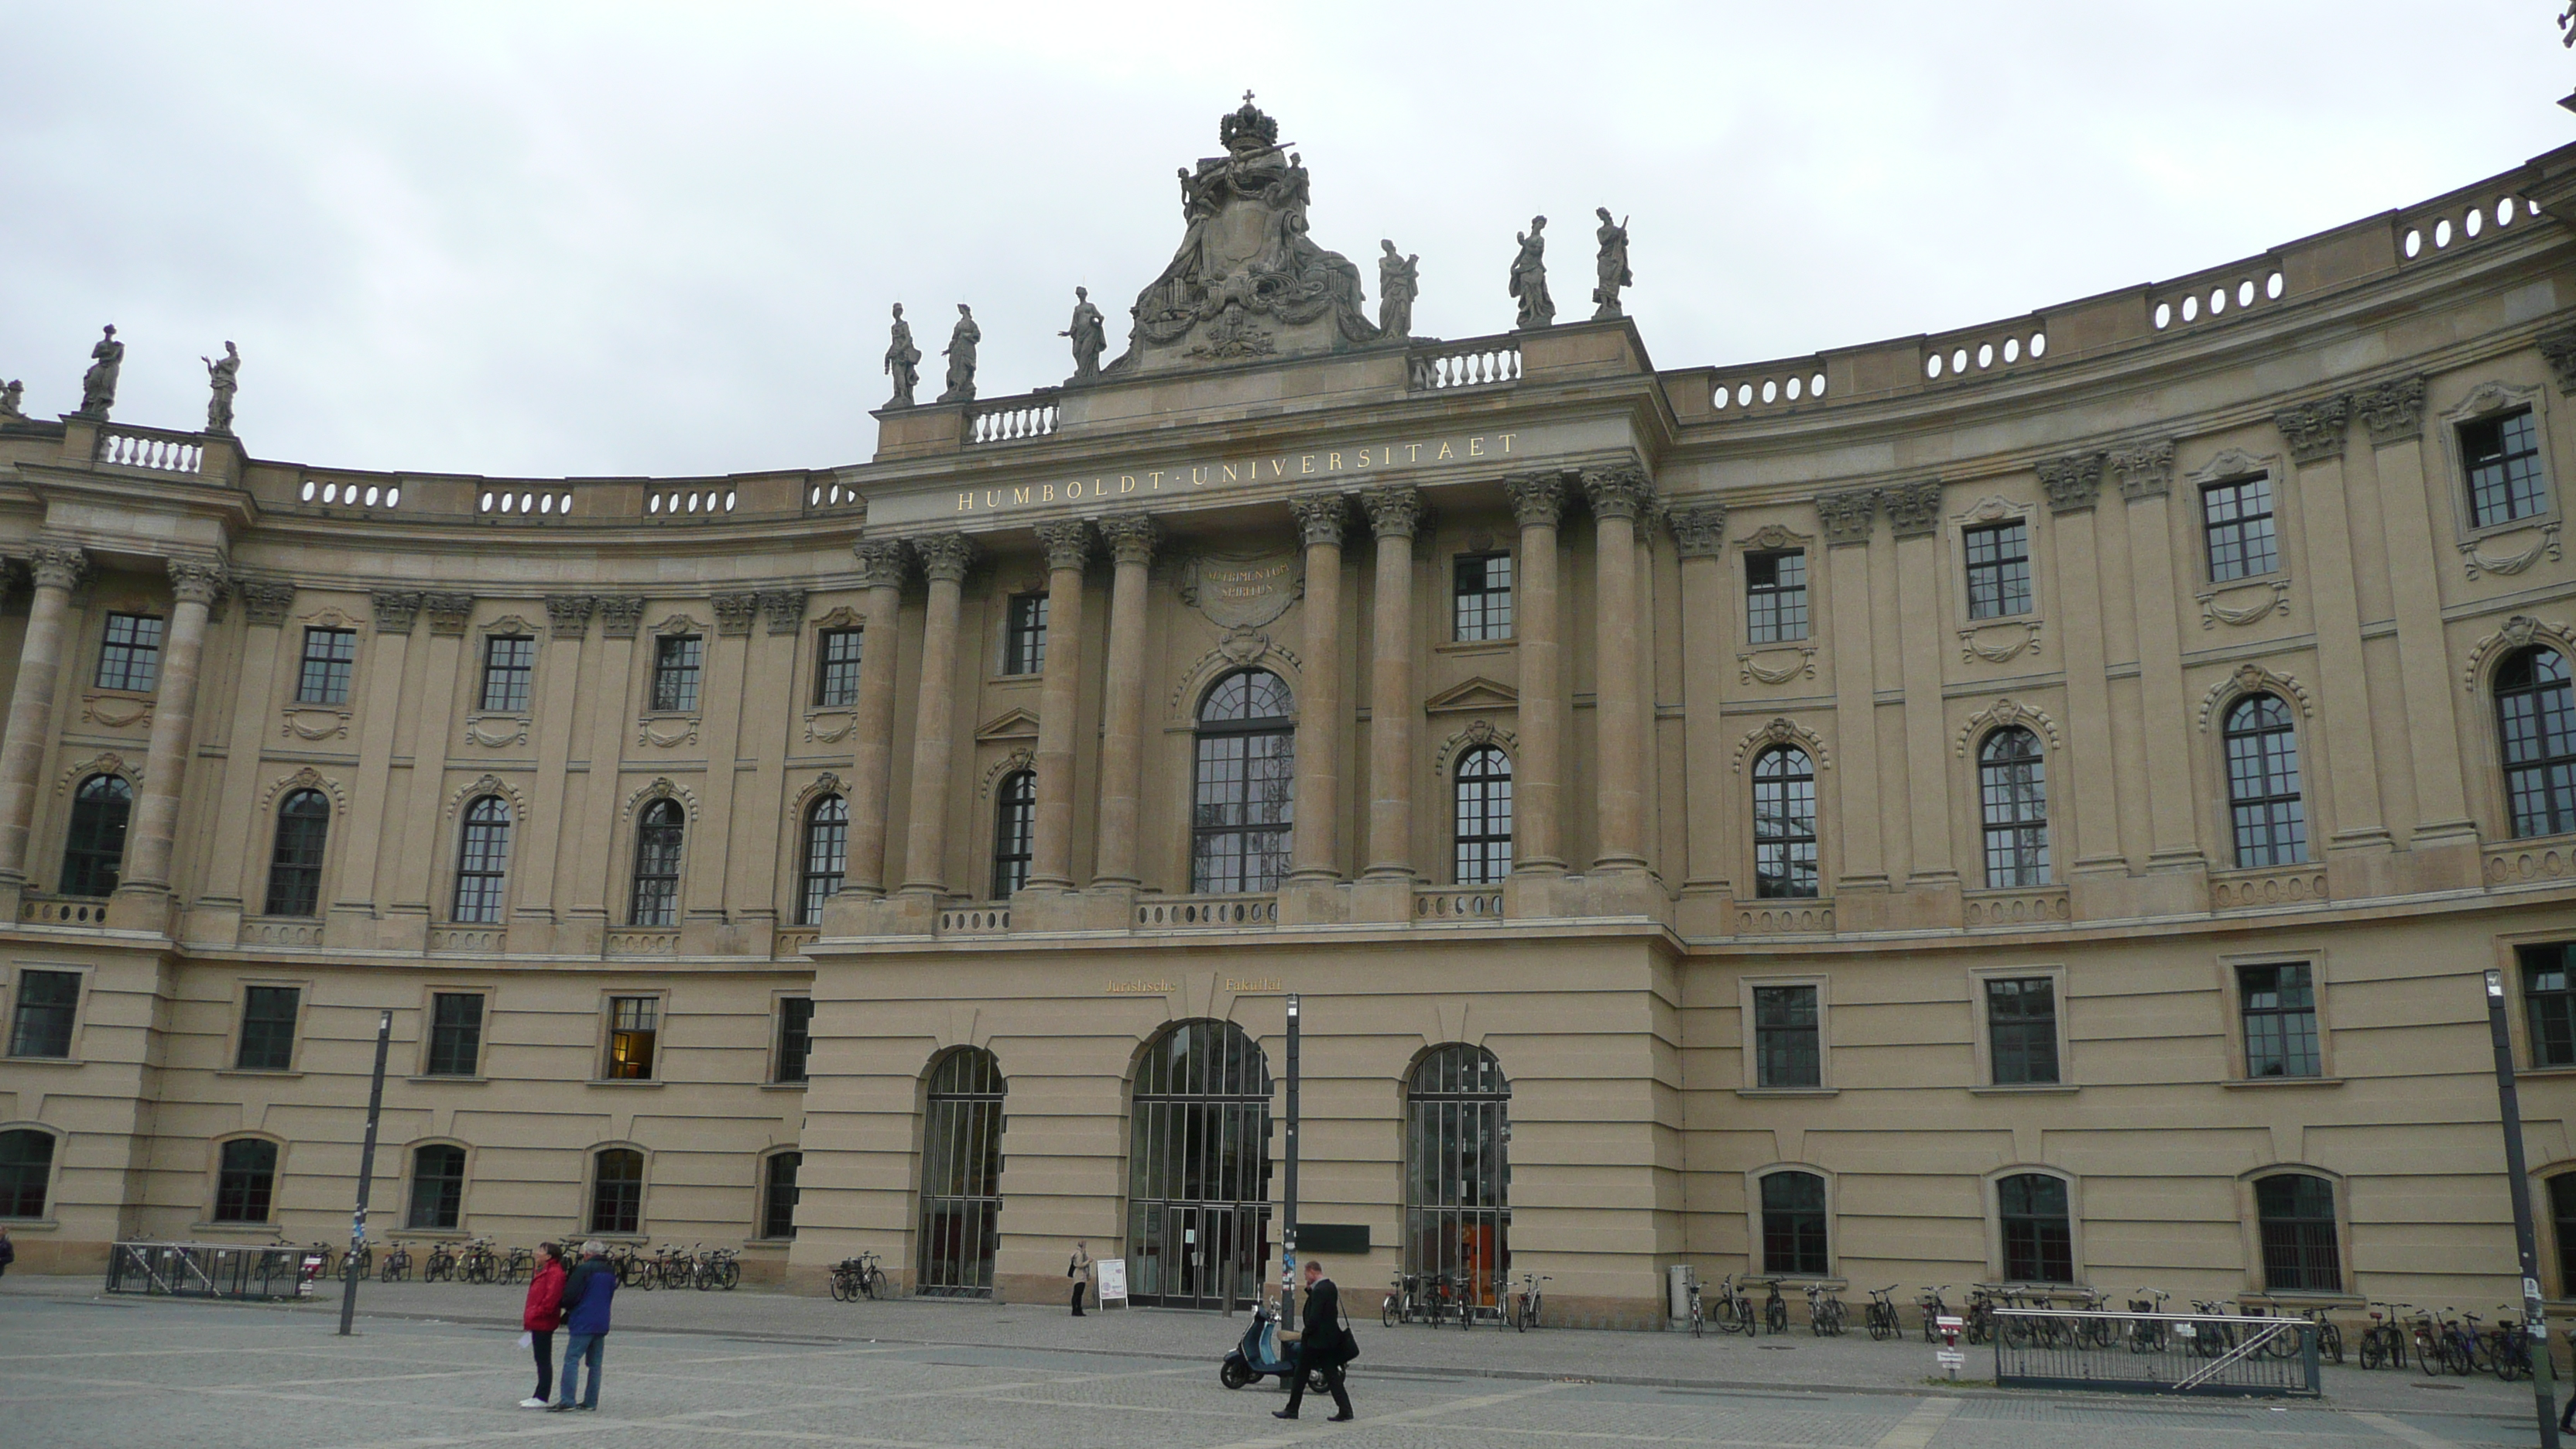 File:Humboldt-Universität zu Berlin 06.JPG - Wikimedia Commons